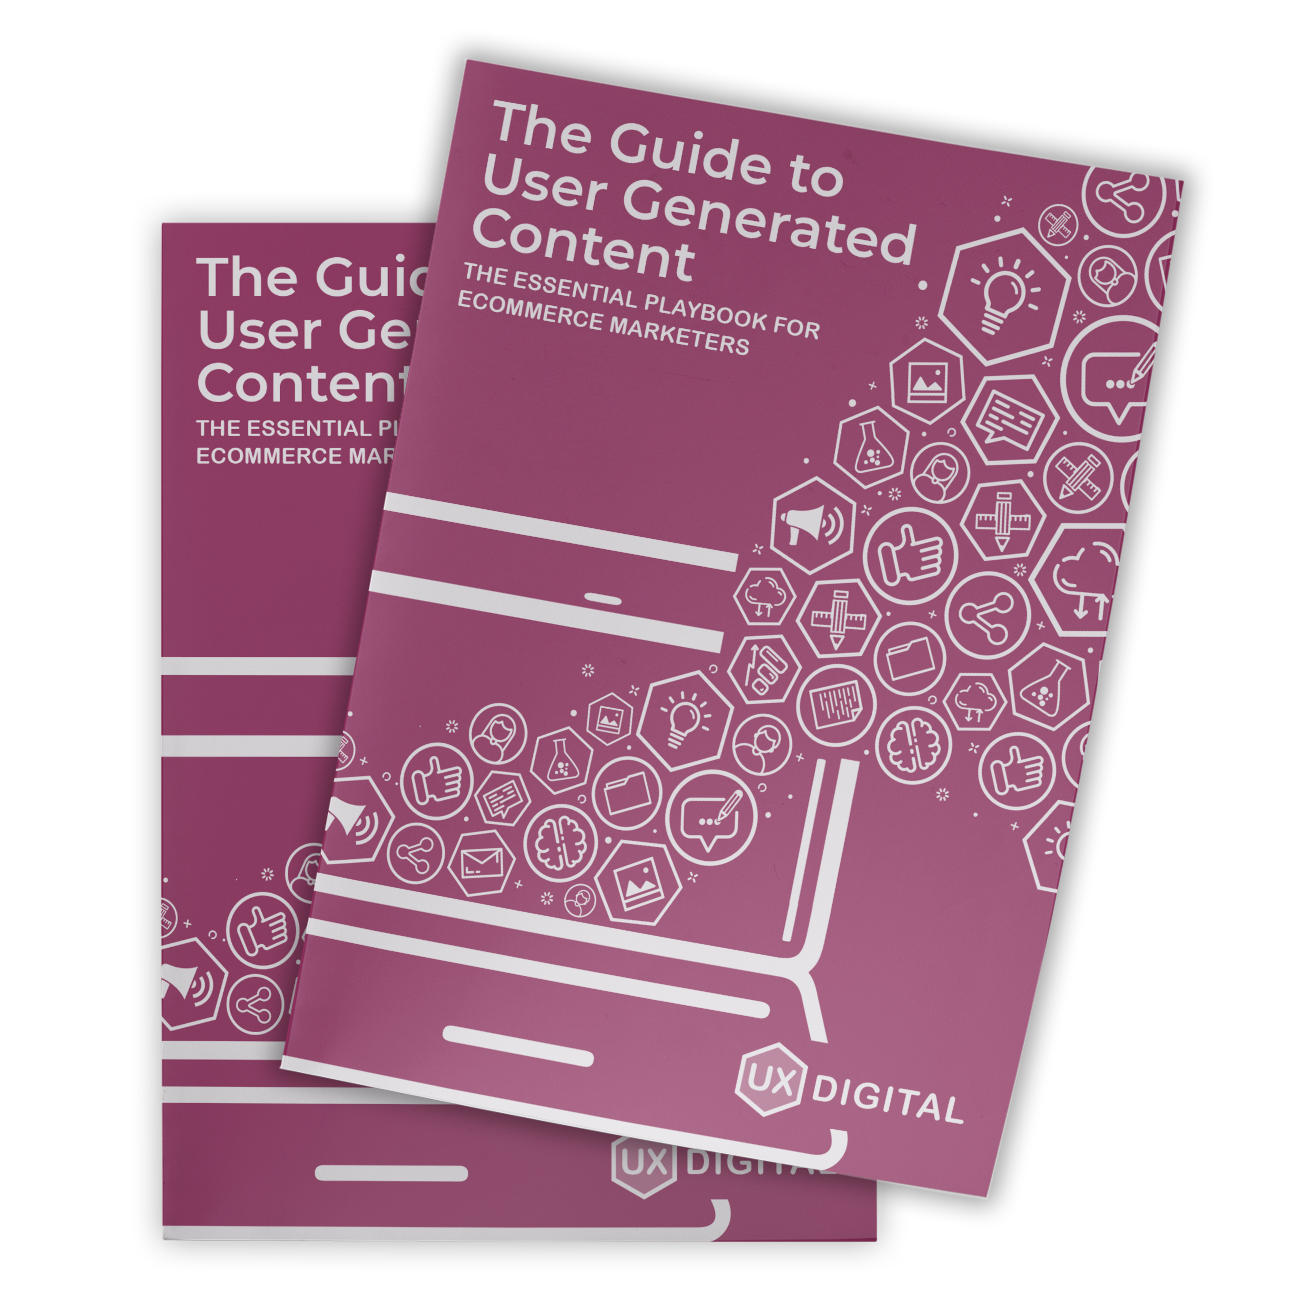 The-Guide-to-User-Generated-Content-eGuide-M.png